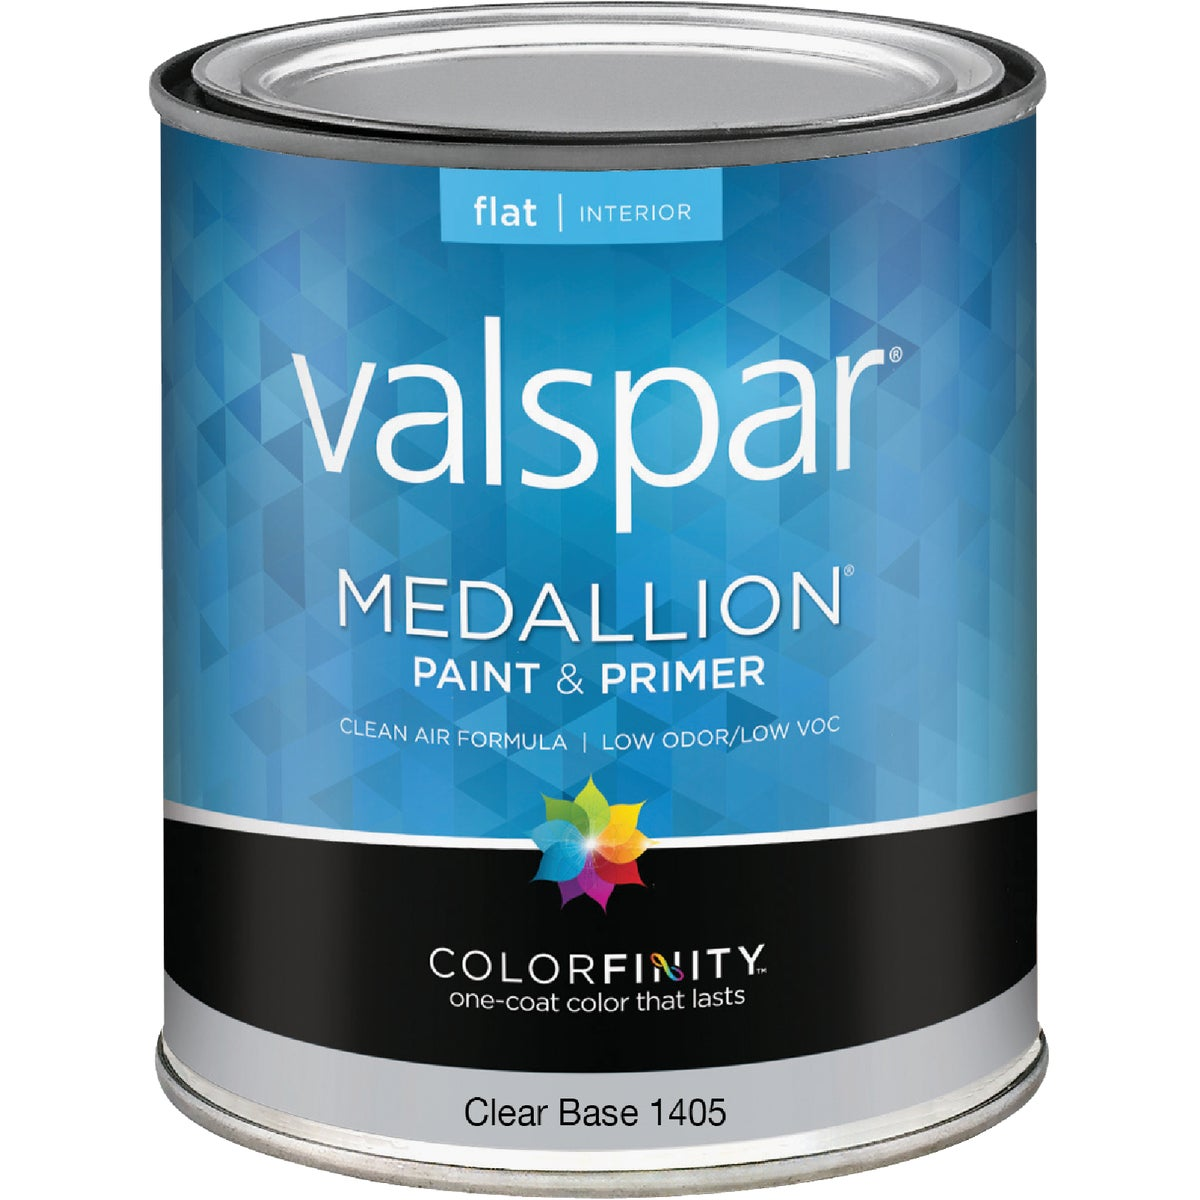 INT FLAT CLEAR BS PAINT - 027.0001405.005 by Valspar Corp